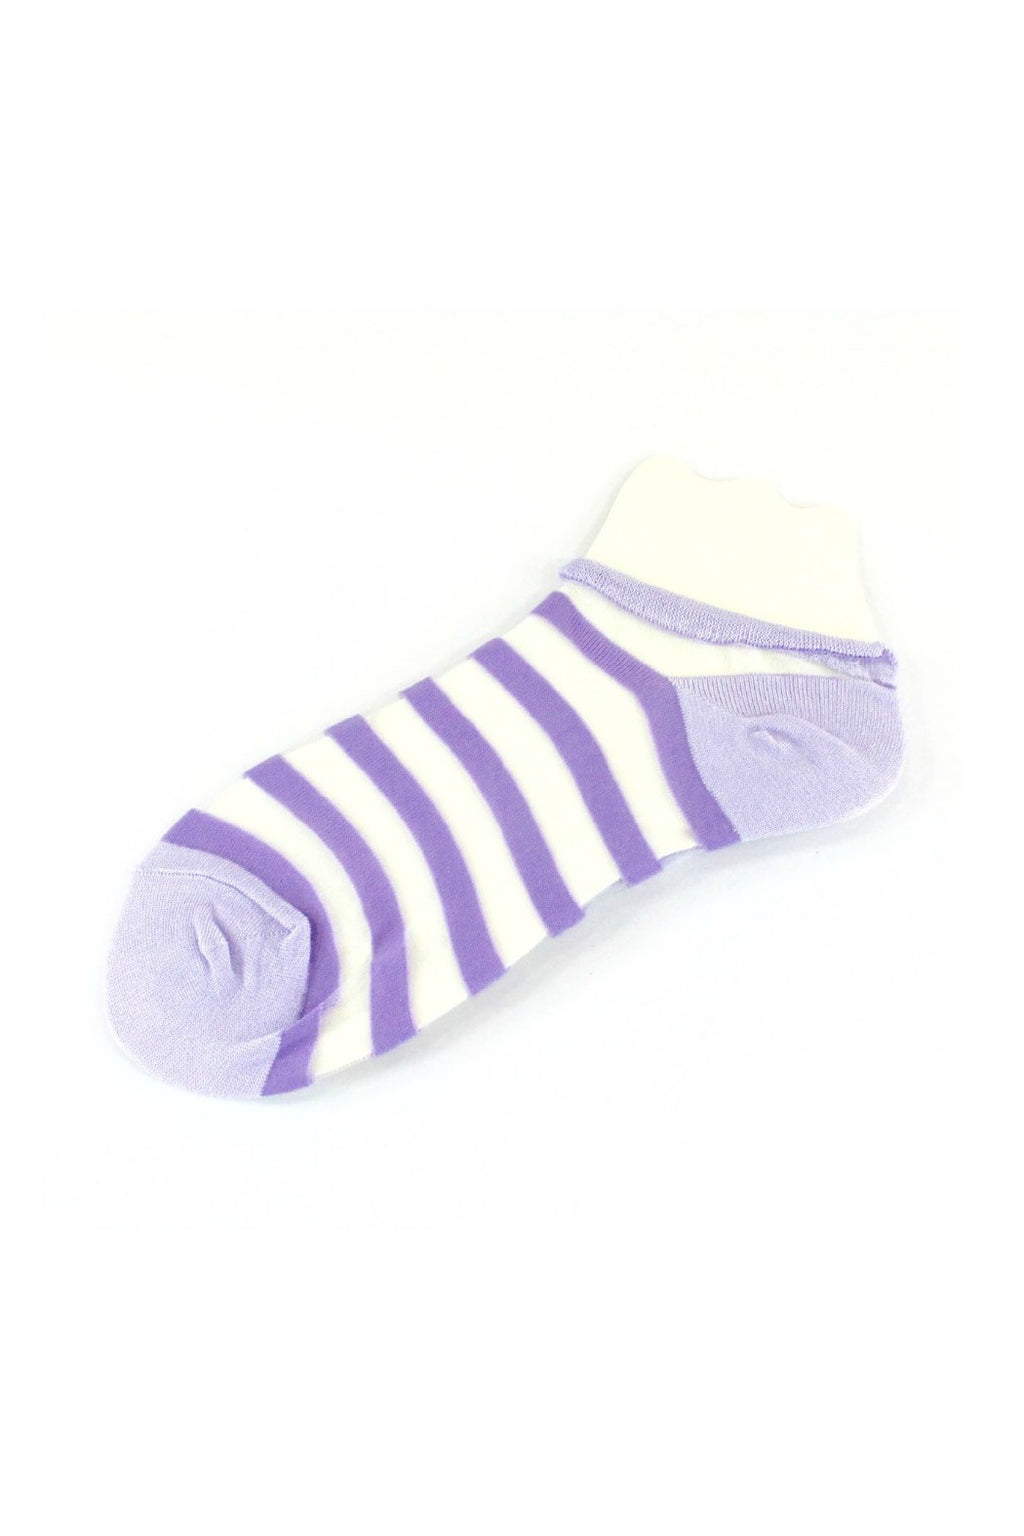 Pretty Persuasions Beach Day Socks - Lavender